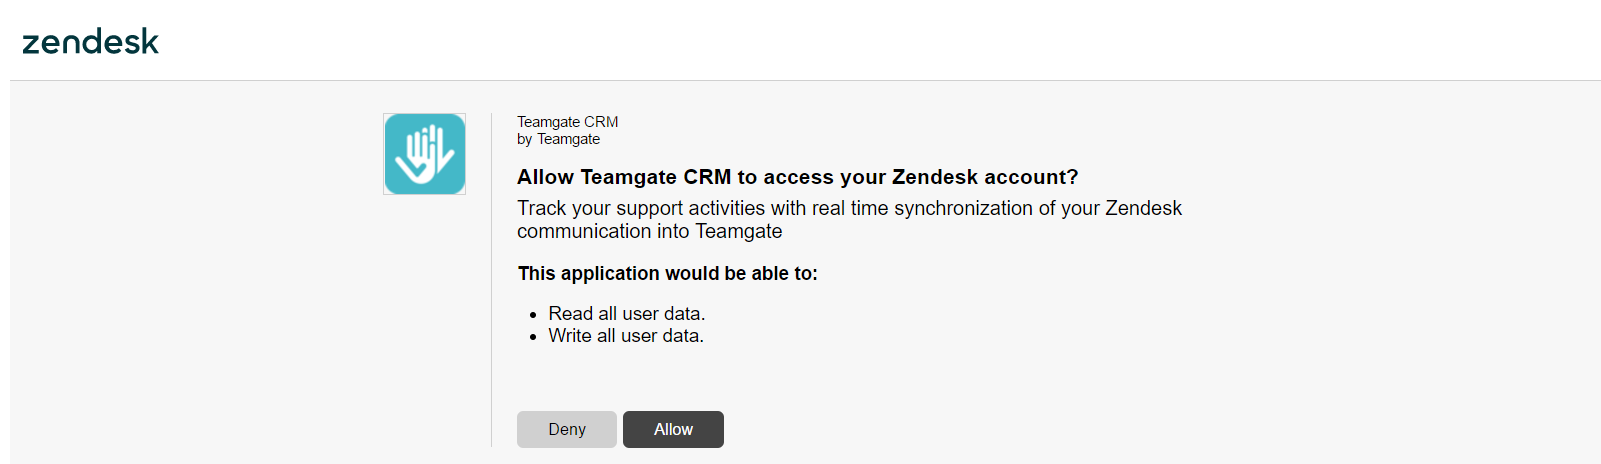 teamgate-zendesk-integration.png